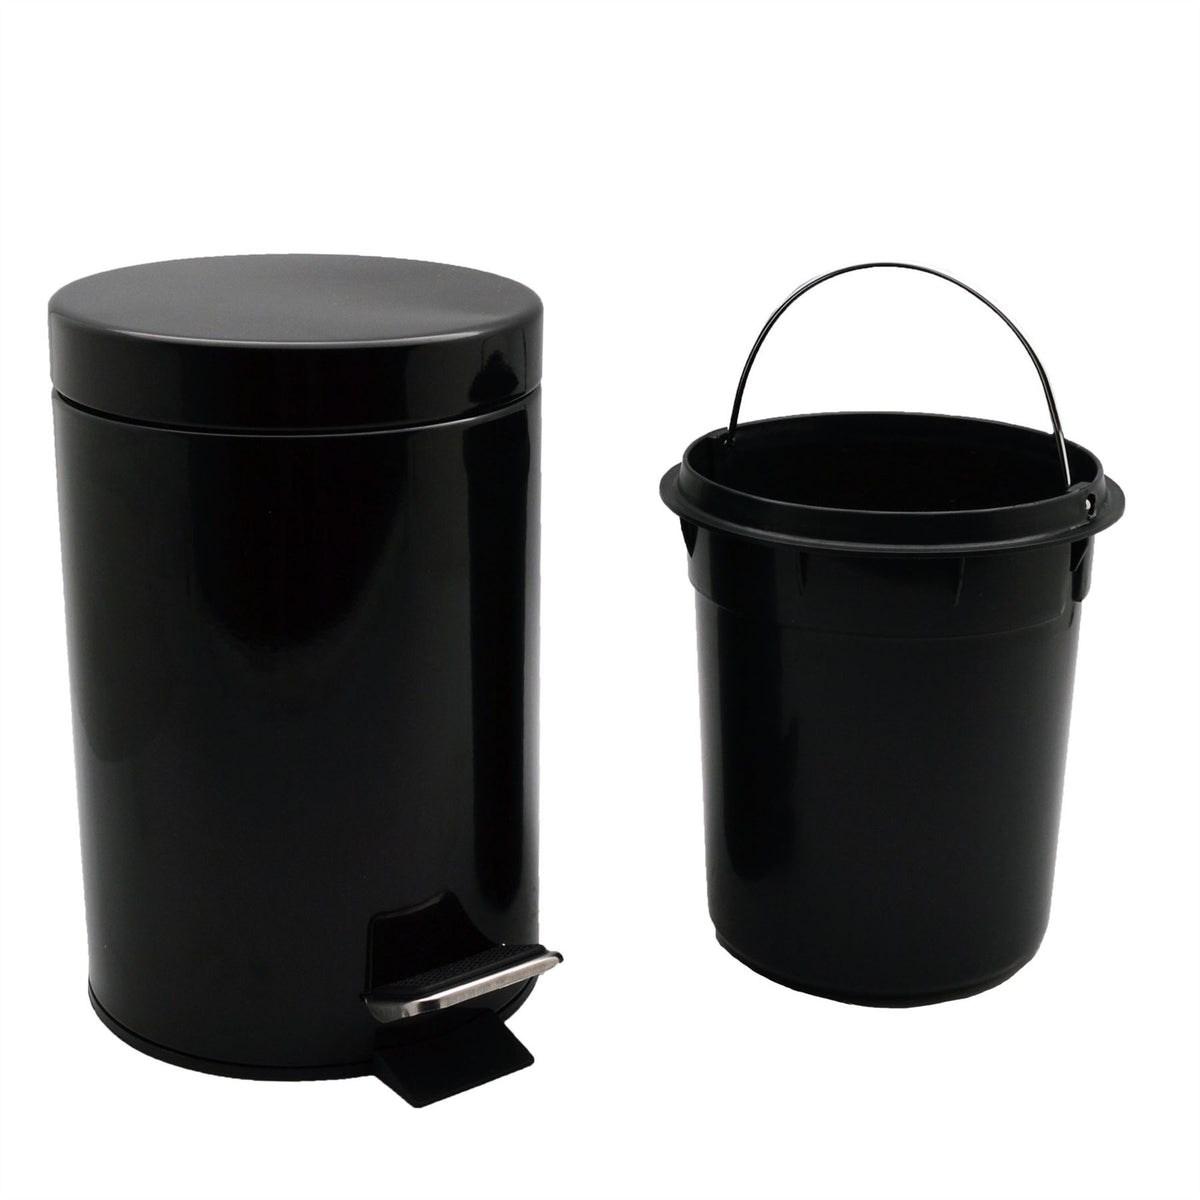 Harbour Housewares Bathroom Pedal Bin With Inner Bucket - Black - 3L